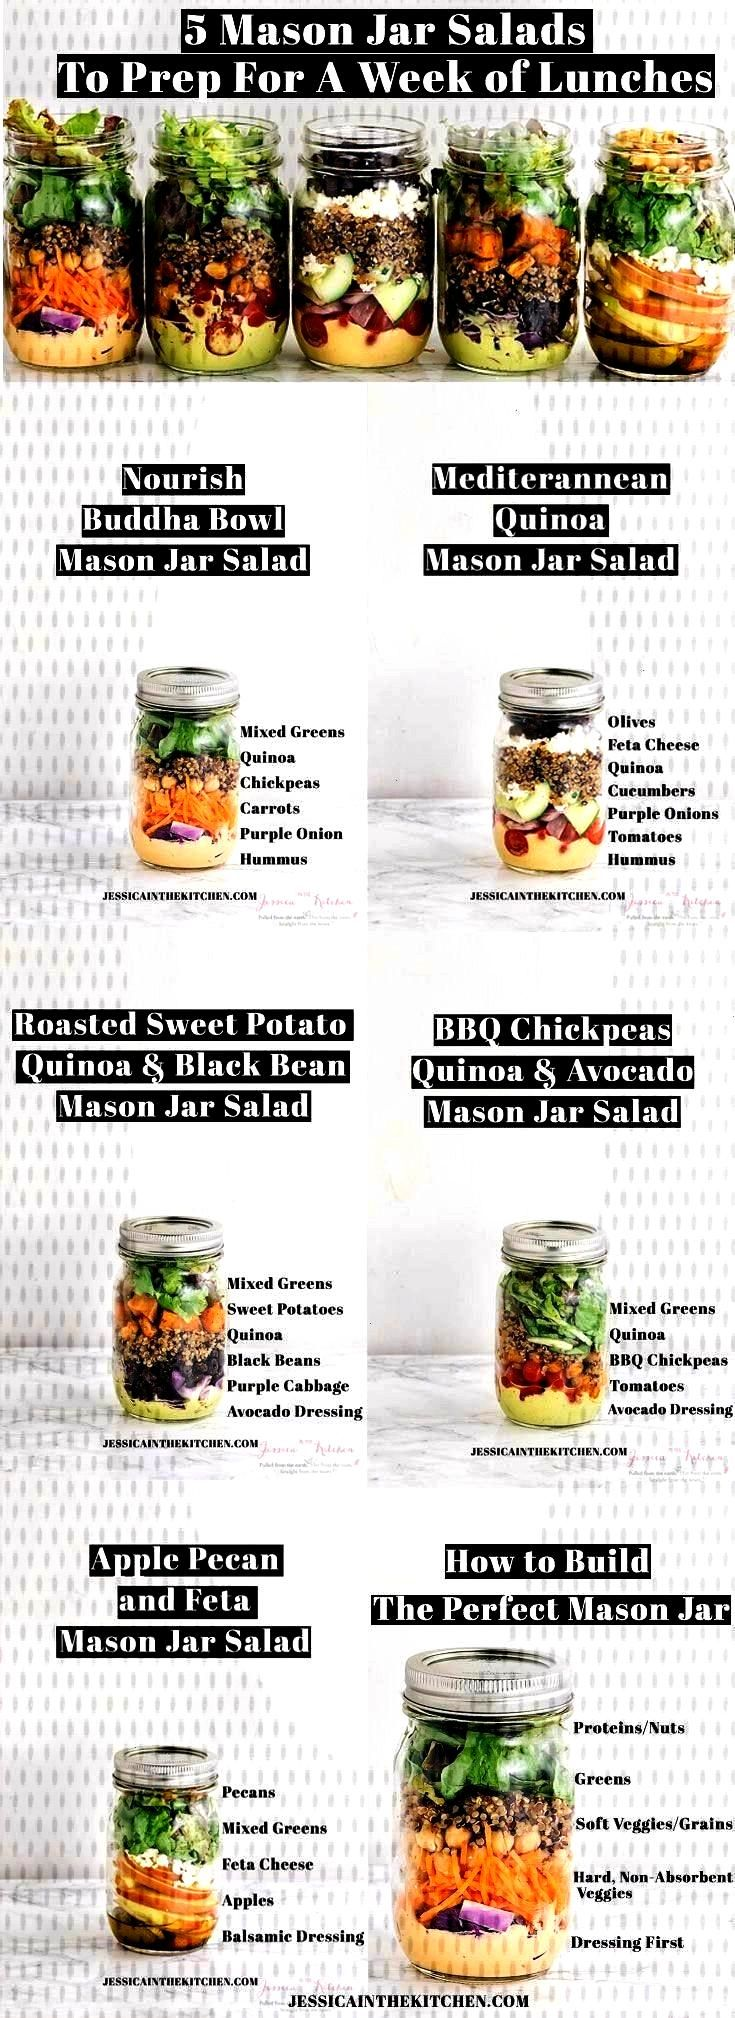 Jar Salads To Meal Prep for a Week of Lunches - 5 Salate im Glas -5 Mason Jar Salads To Meal Prep